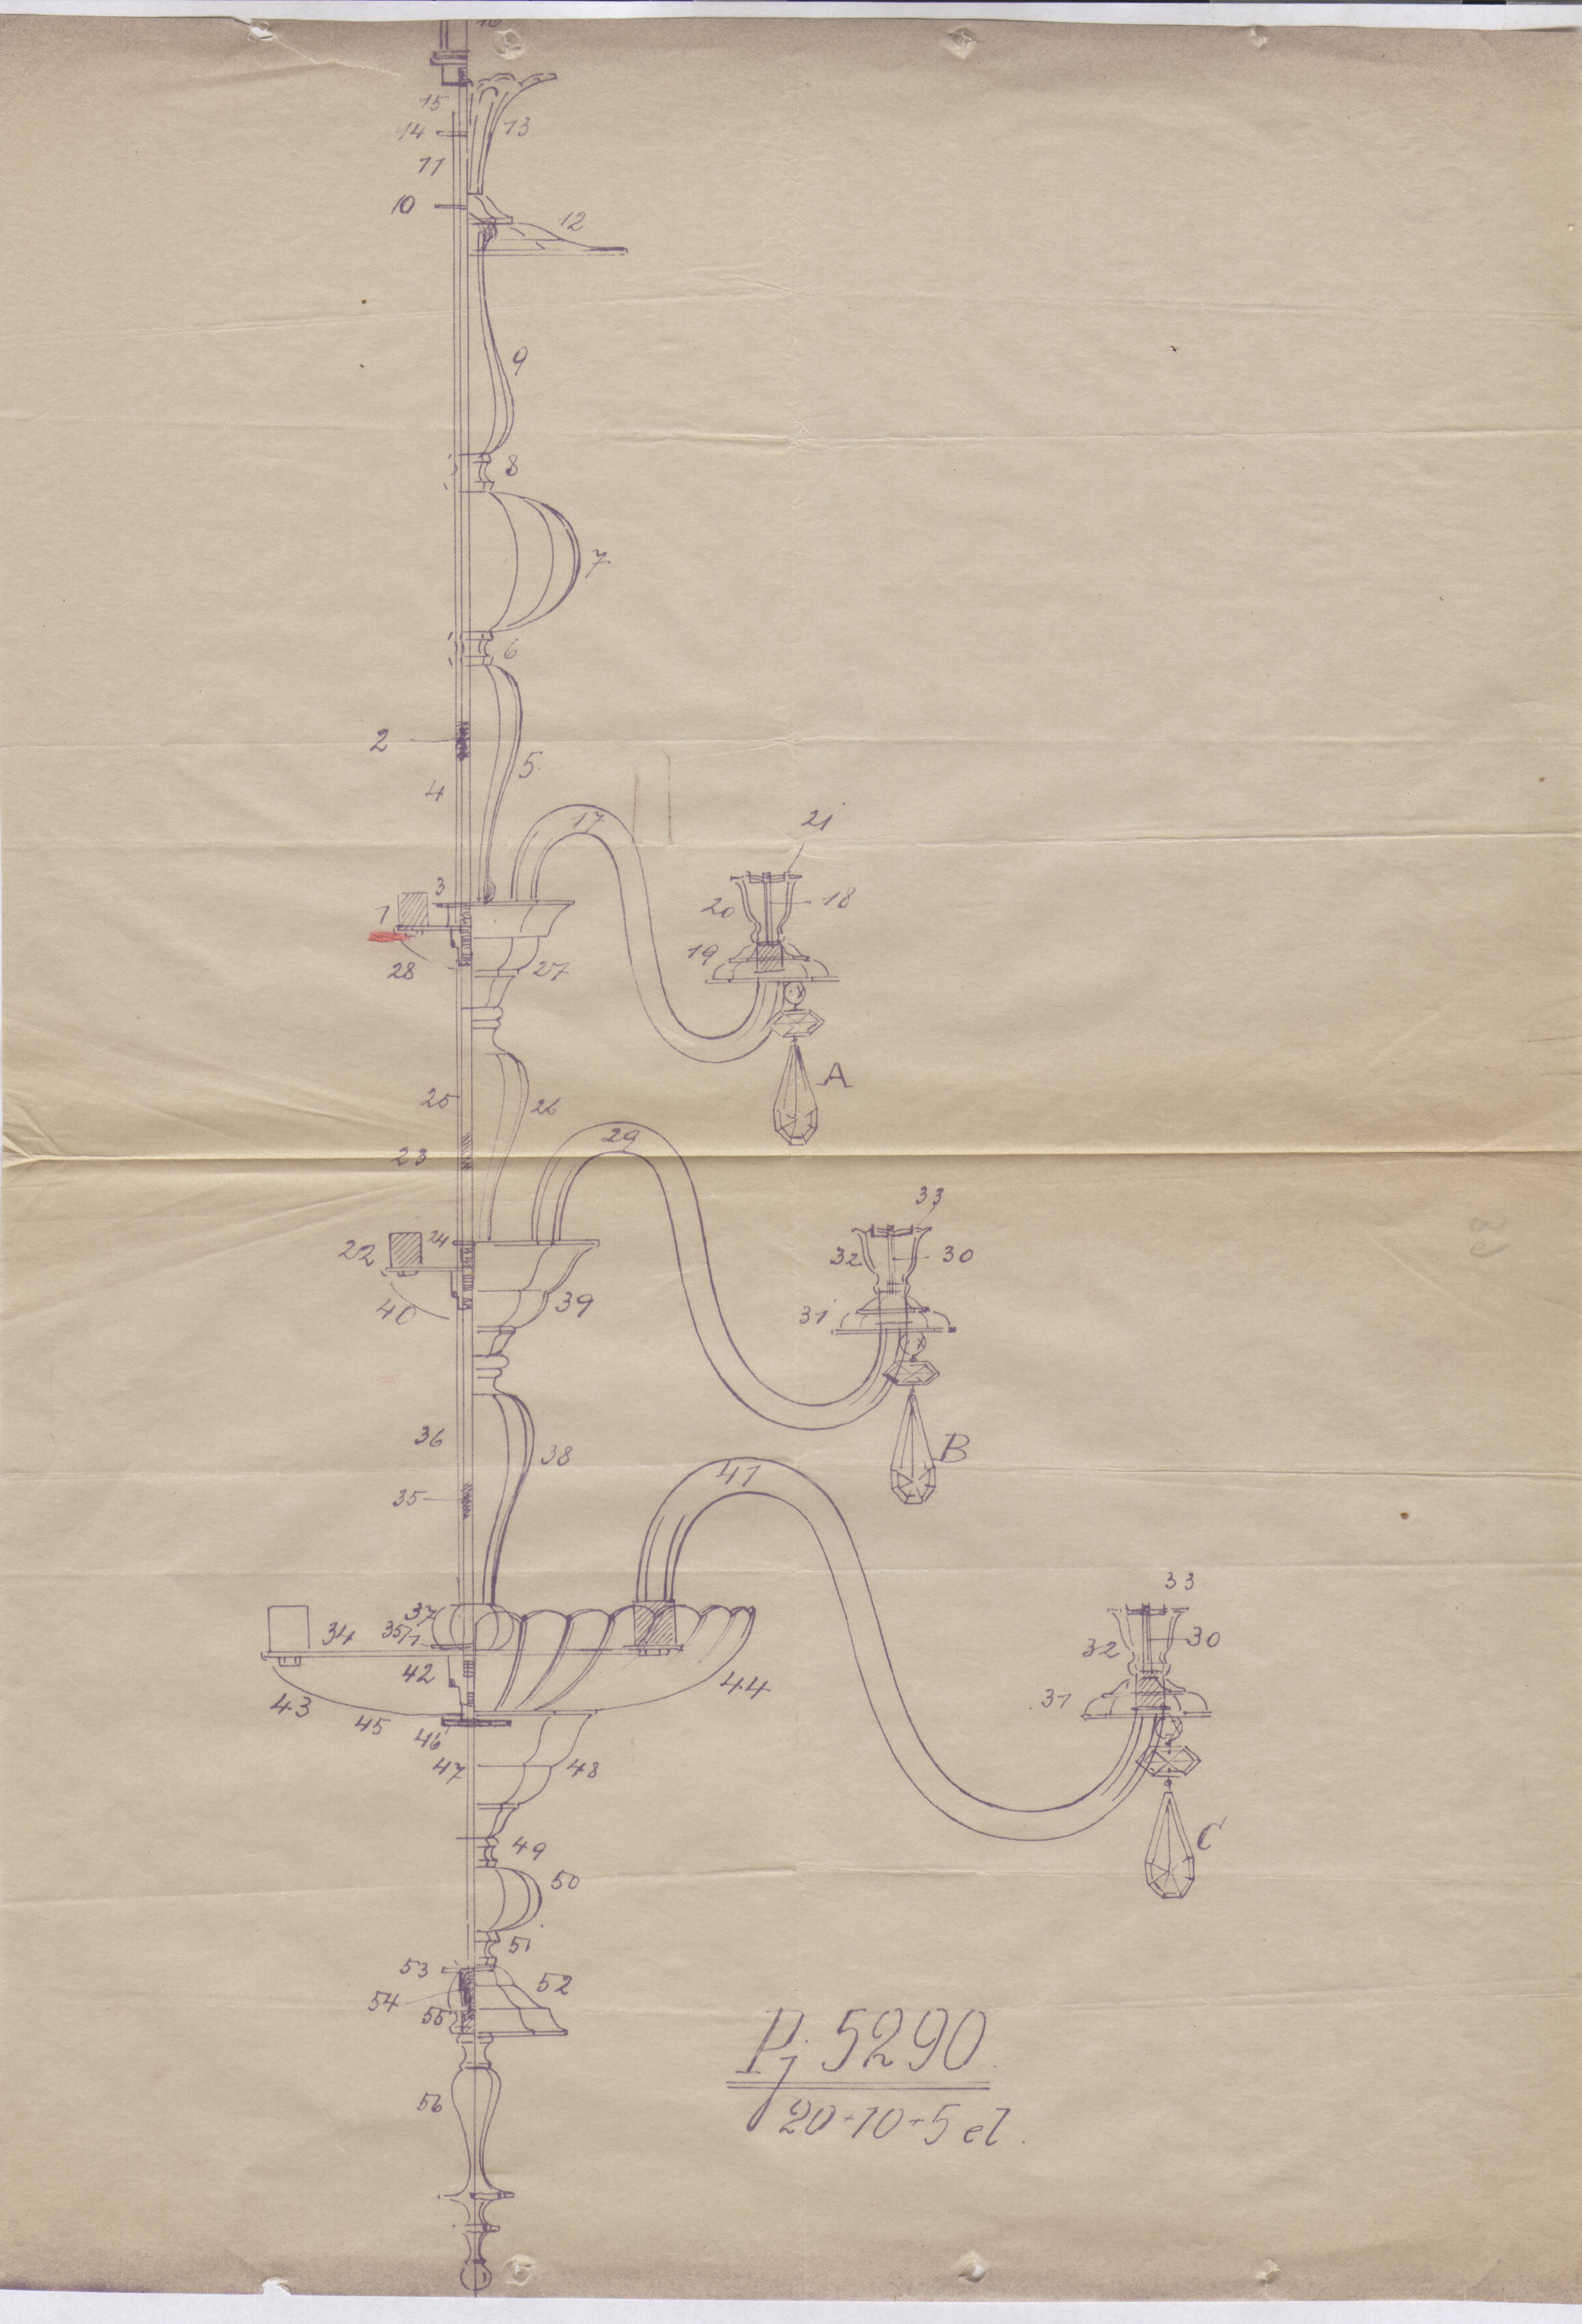 Drawing of the chandelier, 1938, in: Construction file of the Chamber of Commerce, Industry, and Crafts, 1938, in: Lithuanian Central State Archives, f. 987, ap. 1, b. 804.